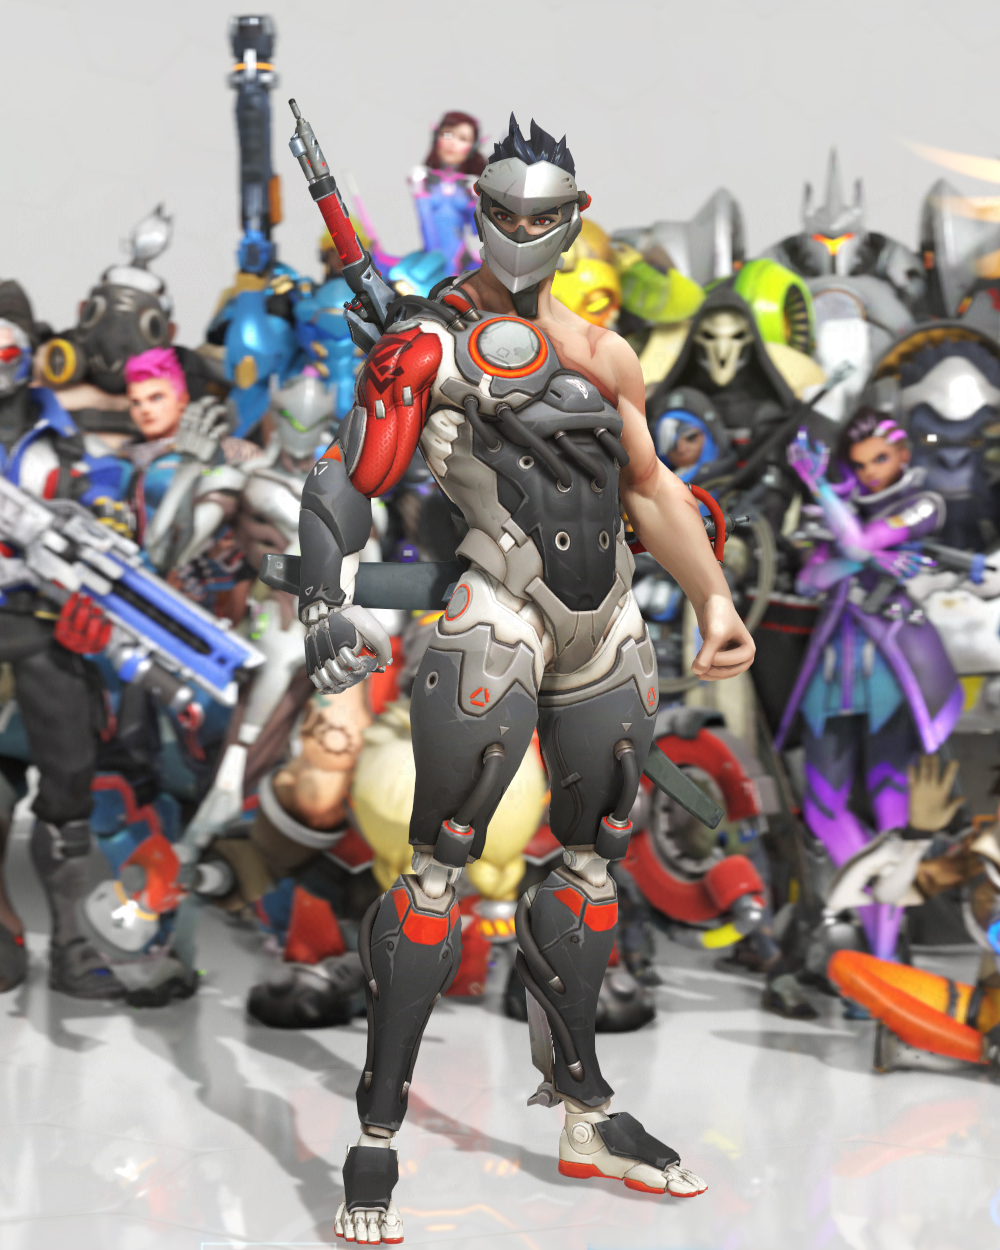 Overwatch Genji Skins 2018 Cosmetics Loot Boxes Costs Pro Game Guides